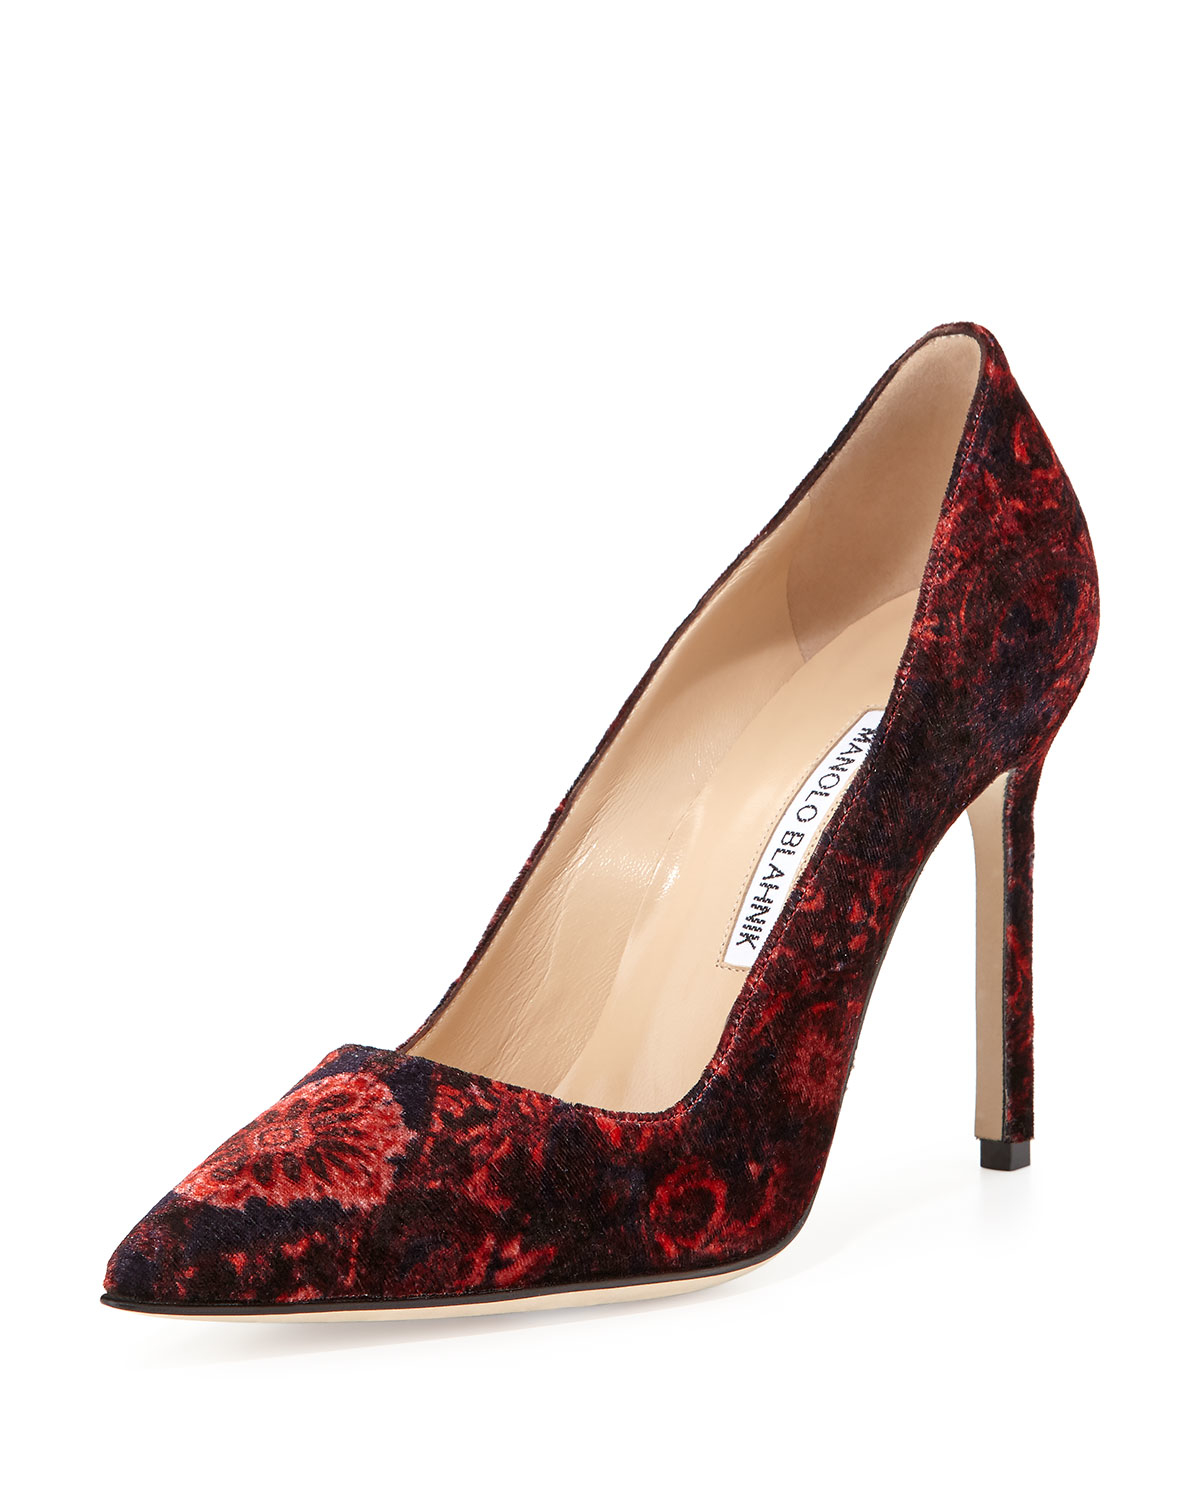 Lyst manolo blahnik bb floral velvet point toe pump in black for Who is manolo blahnik